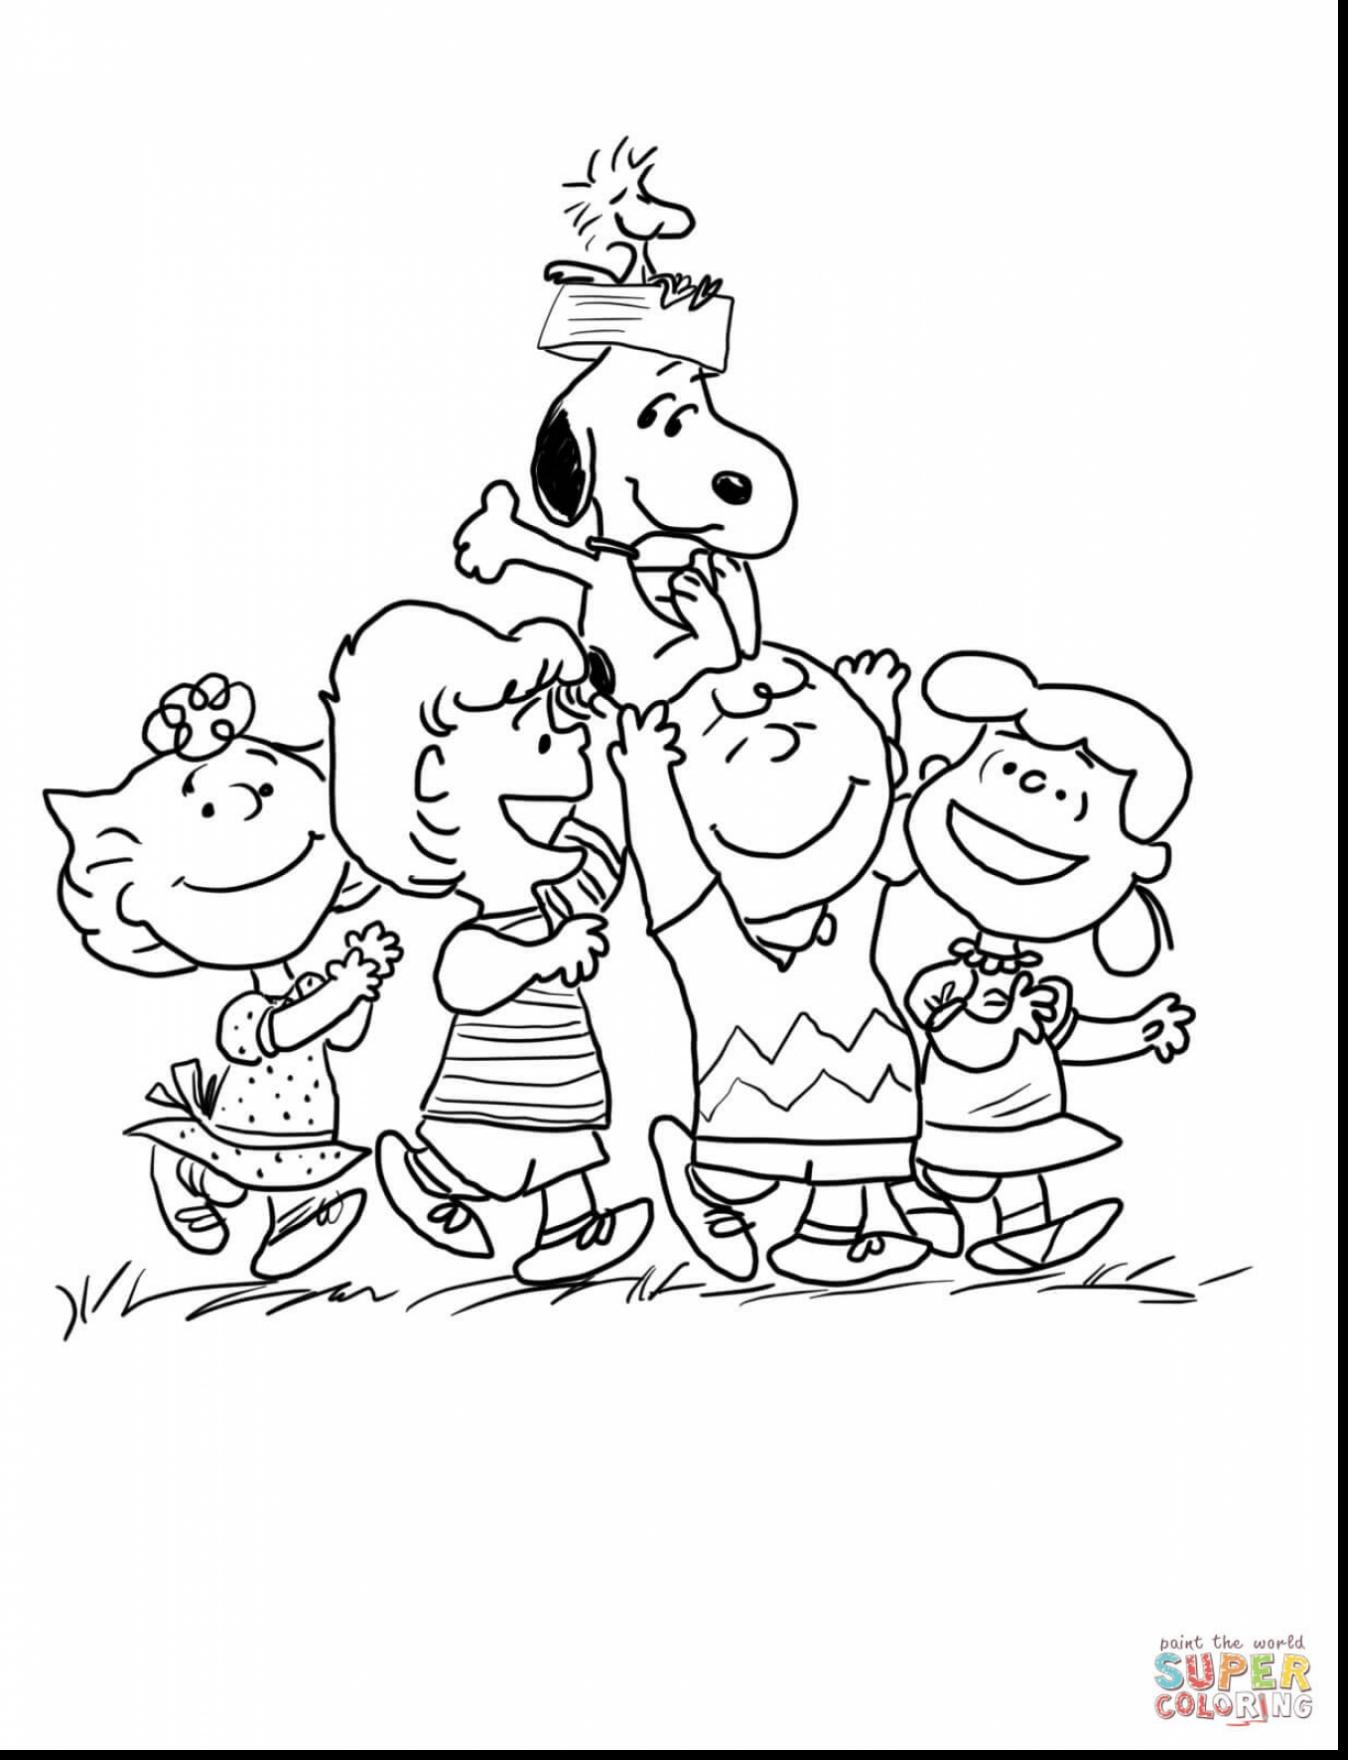 1348x1760 Charlie Brown And Christmas Coloring Pages For Kids Inspirational